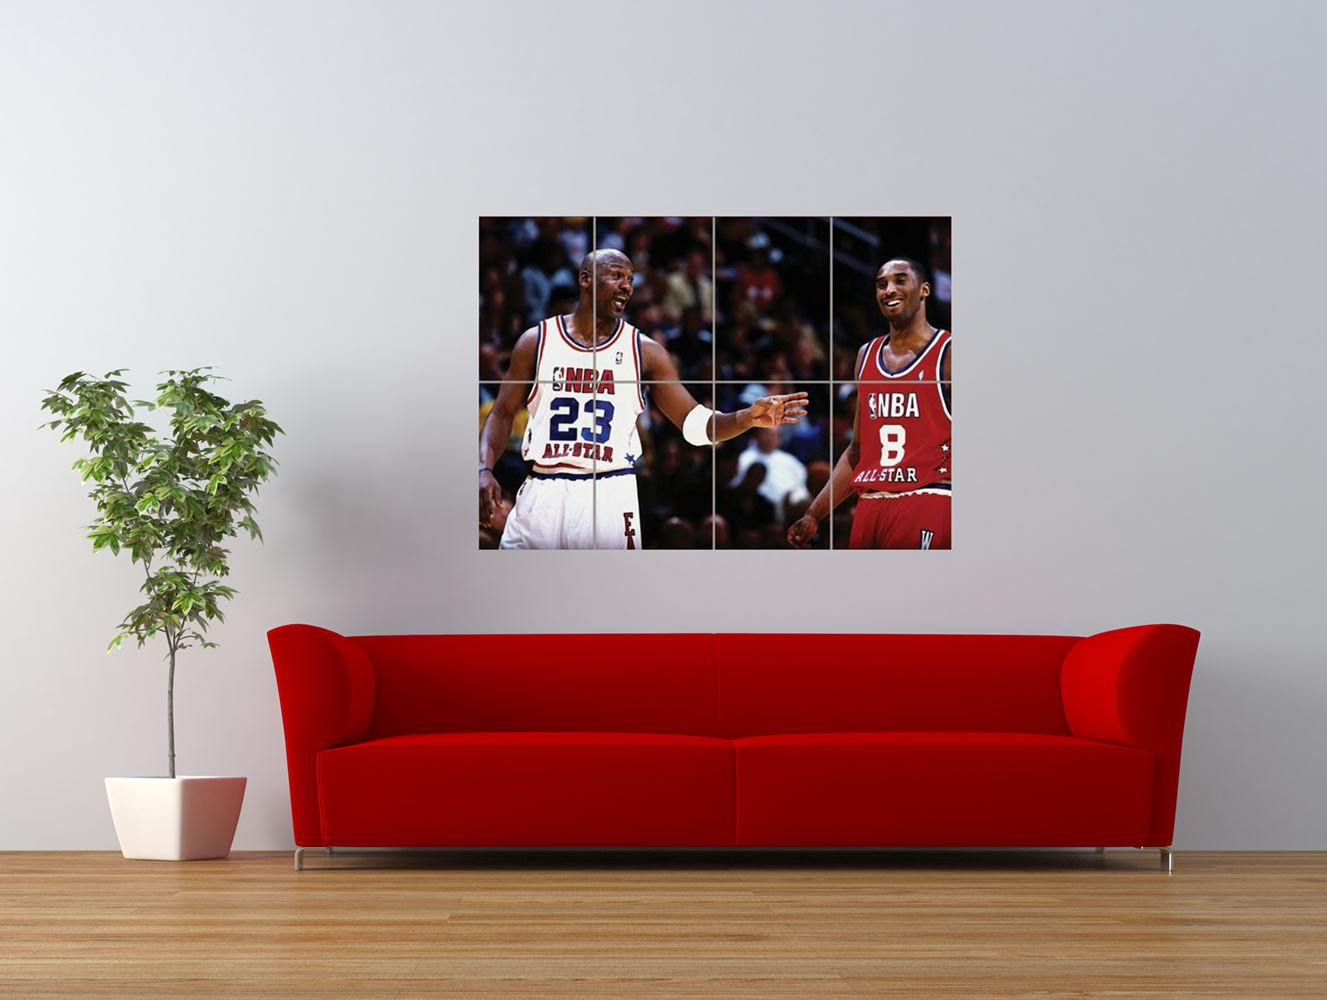 kobe bryant michael jordan basketball sport giant art print panel poster nor0089 ebay. Black Bedroom Furniture Sets. Home Design Ideas